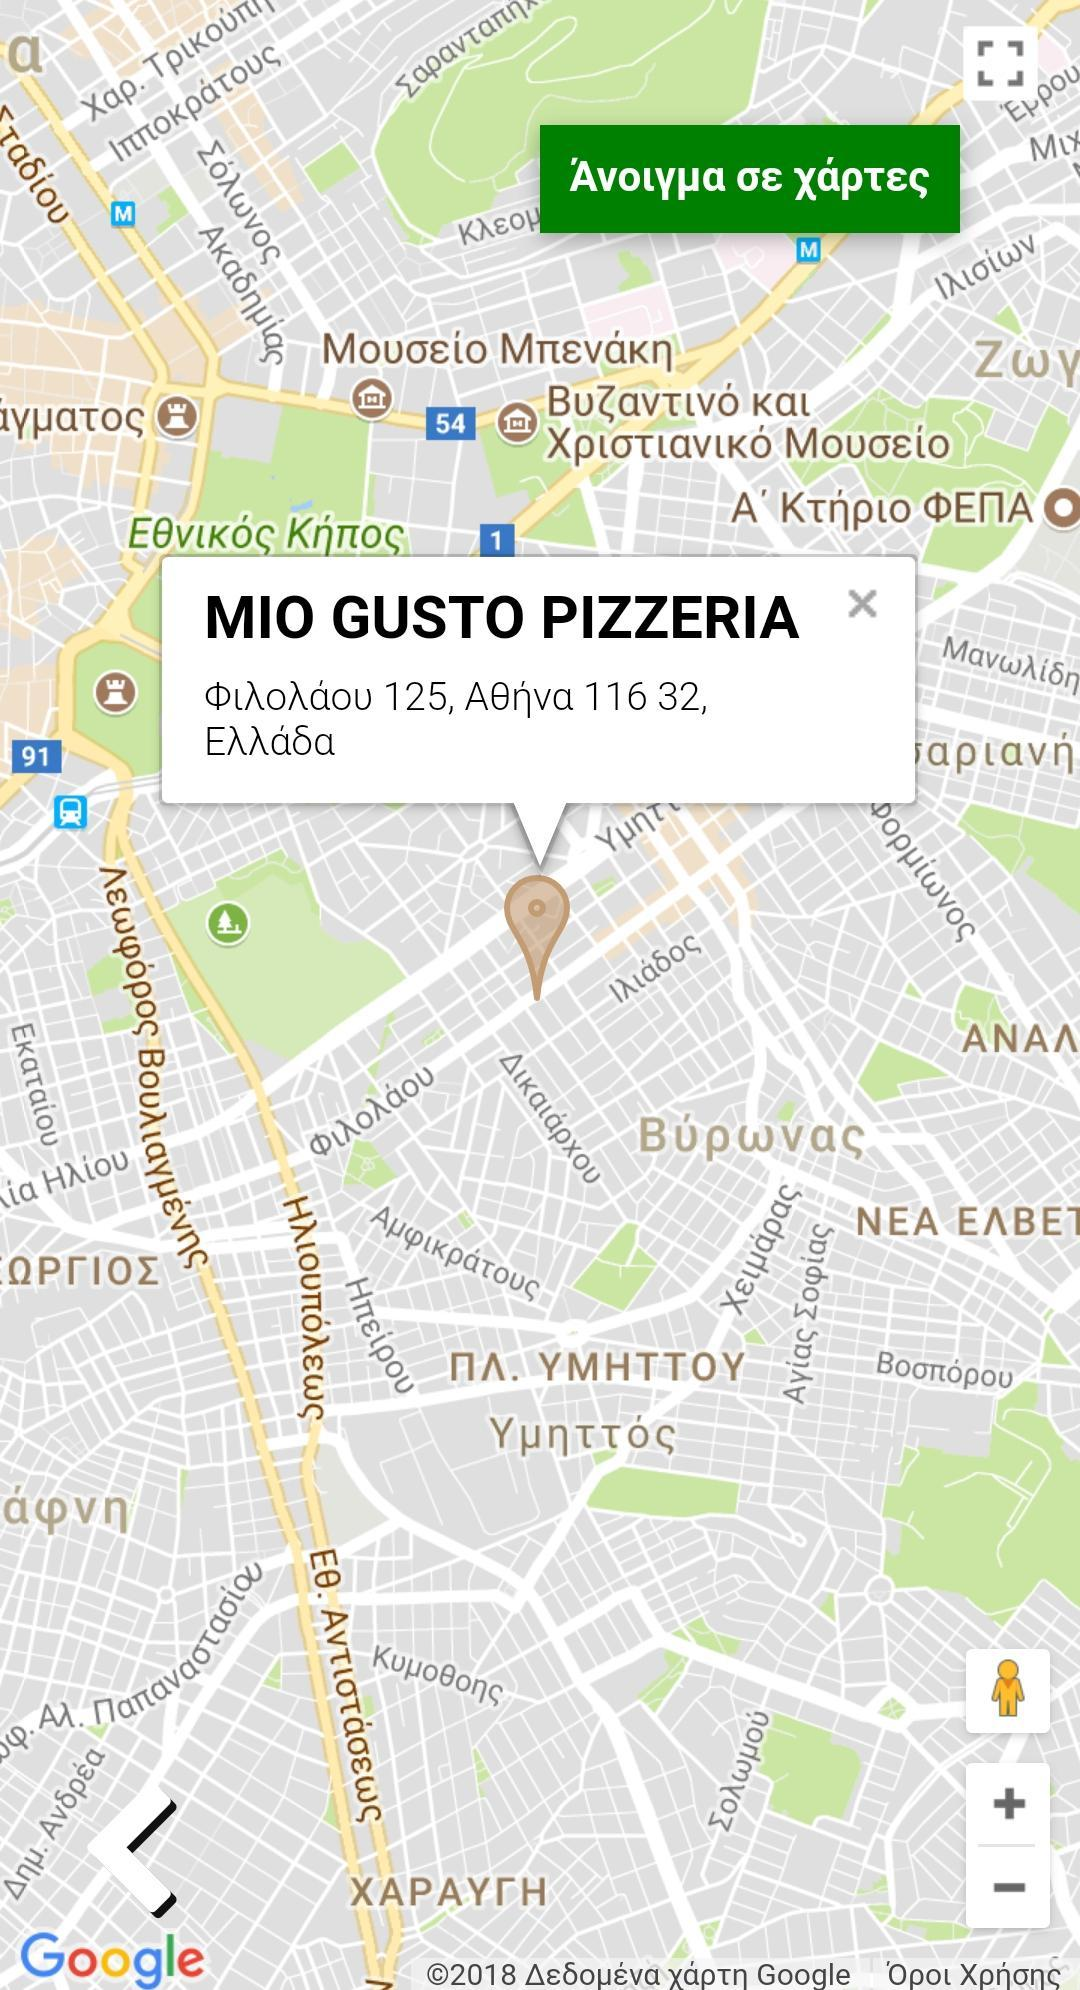 Mio Gusto Pizzeria For Android Apk Download